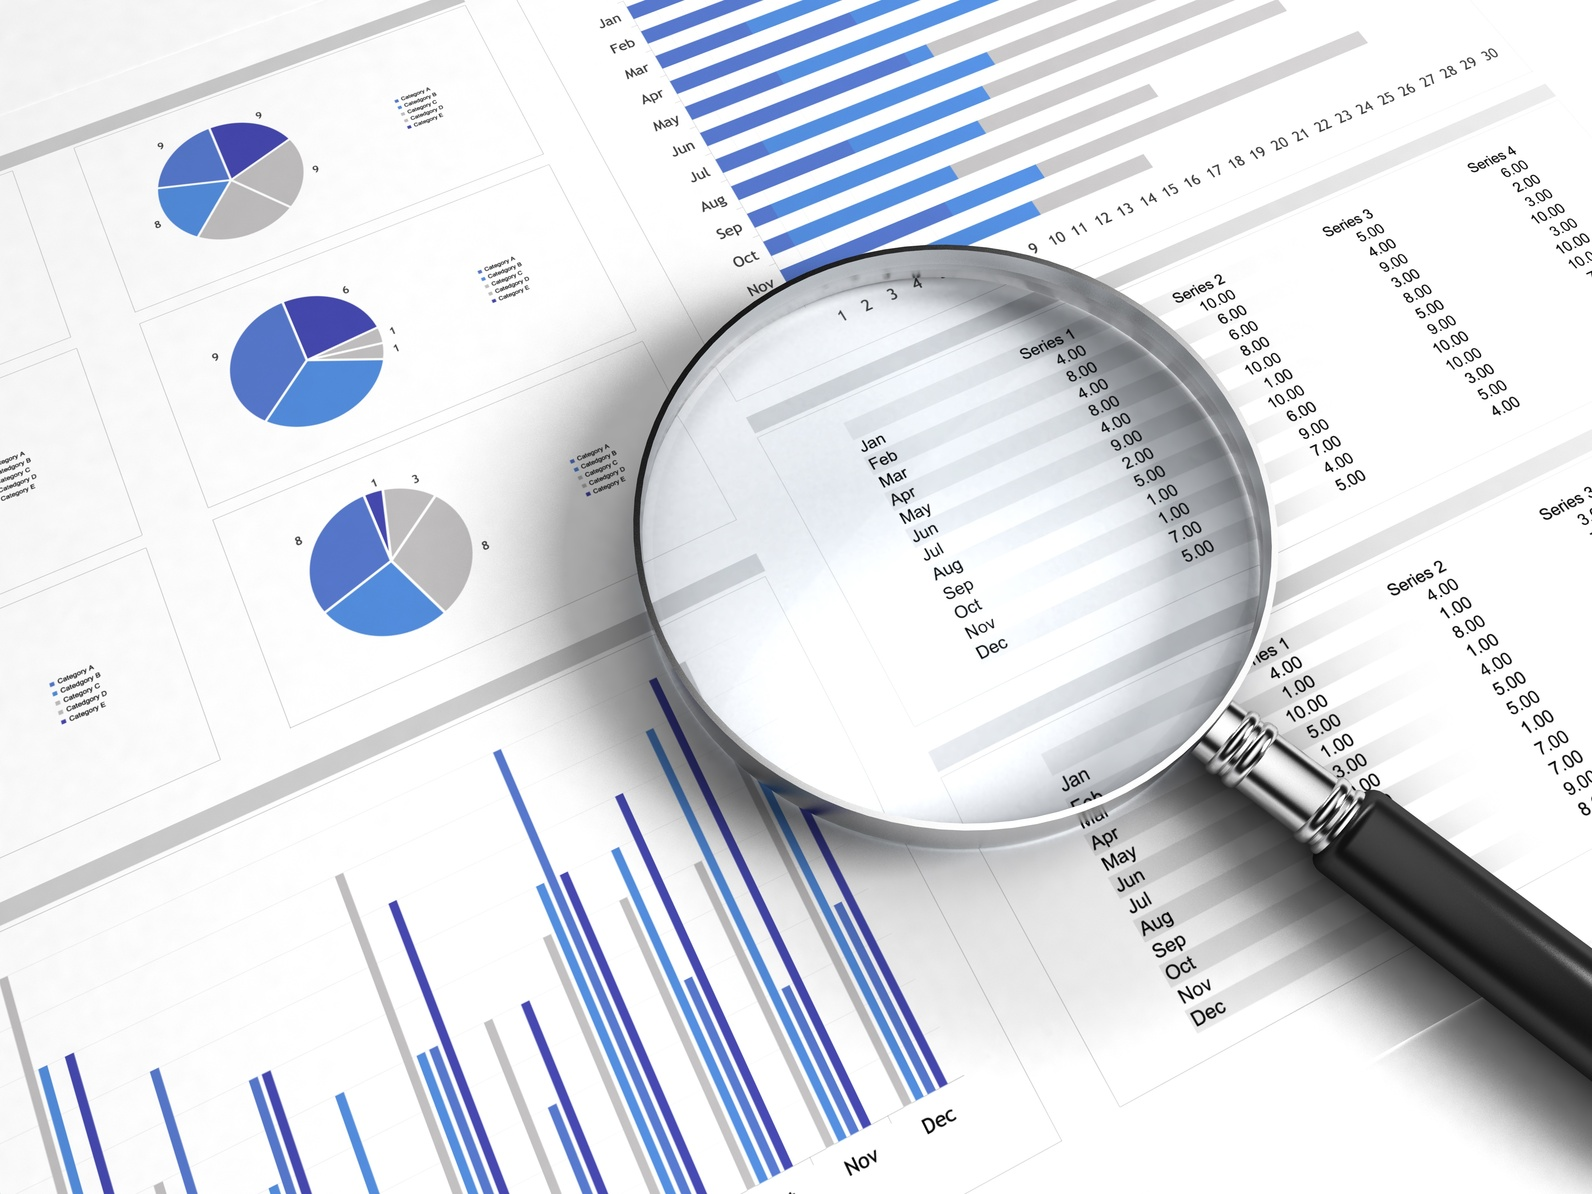 Business-valuation-magnifying-glass.jpg